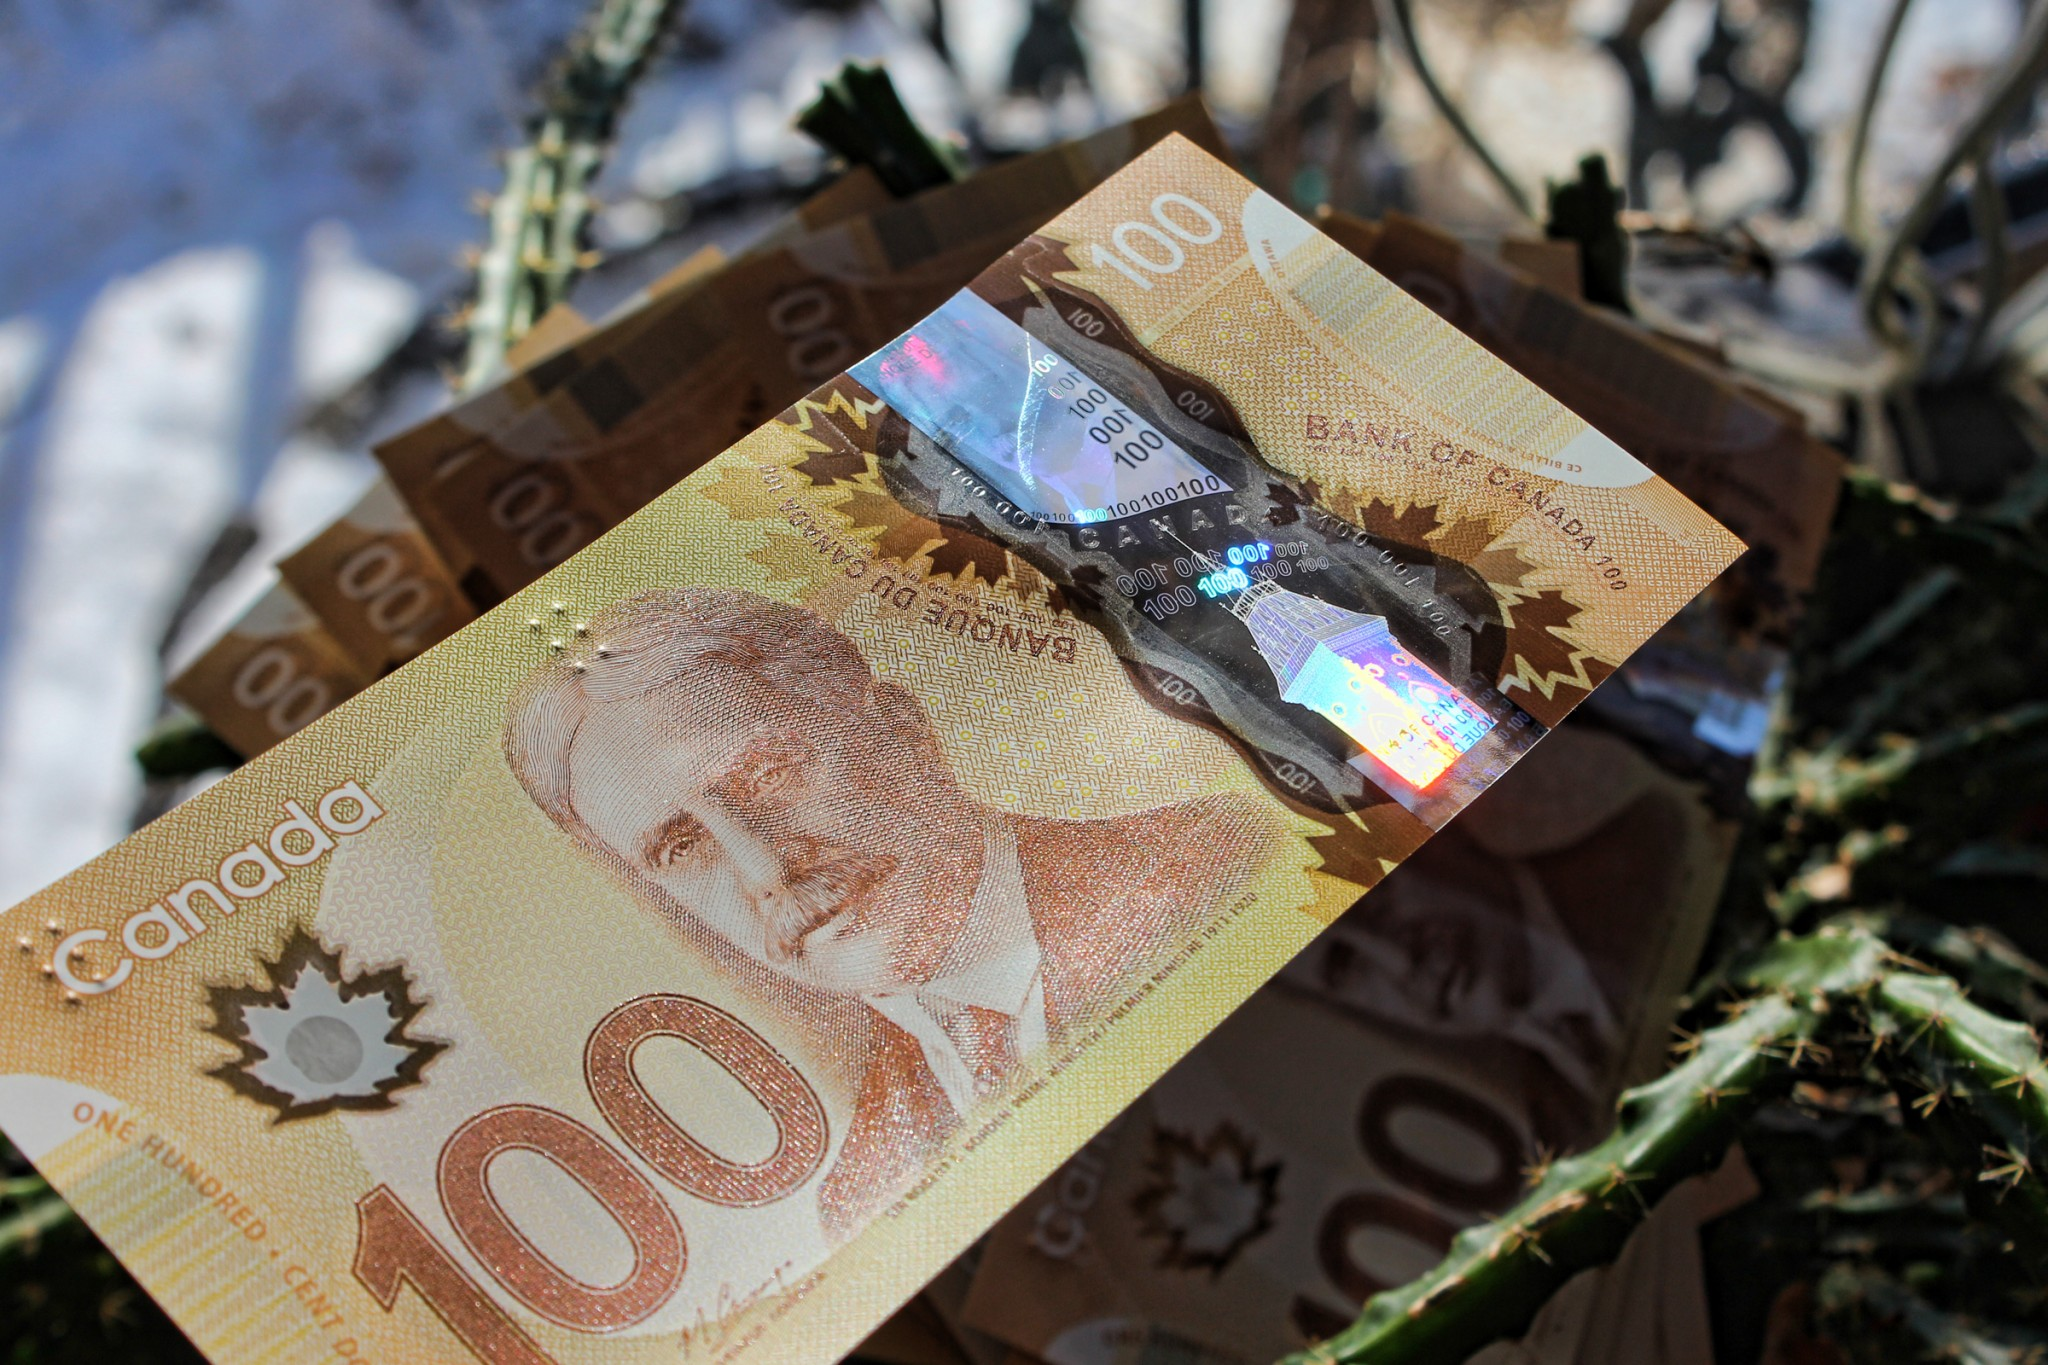 Is the point of statutory holidays really just greed? - Photo by Di Bedard/ Flickr Creative Commons